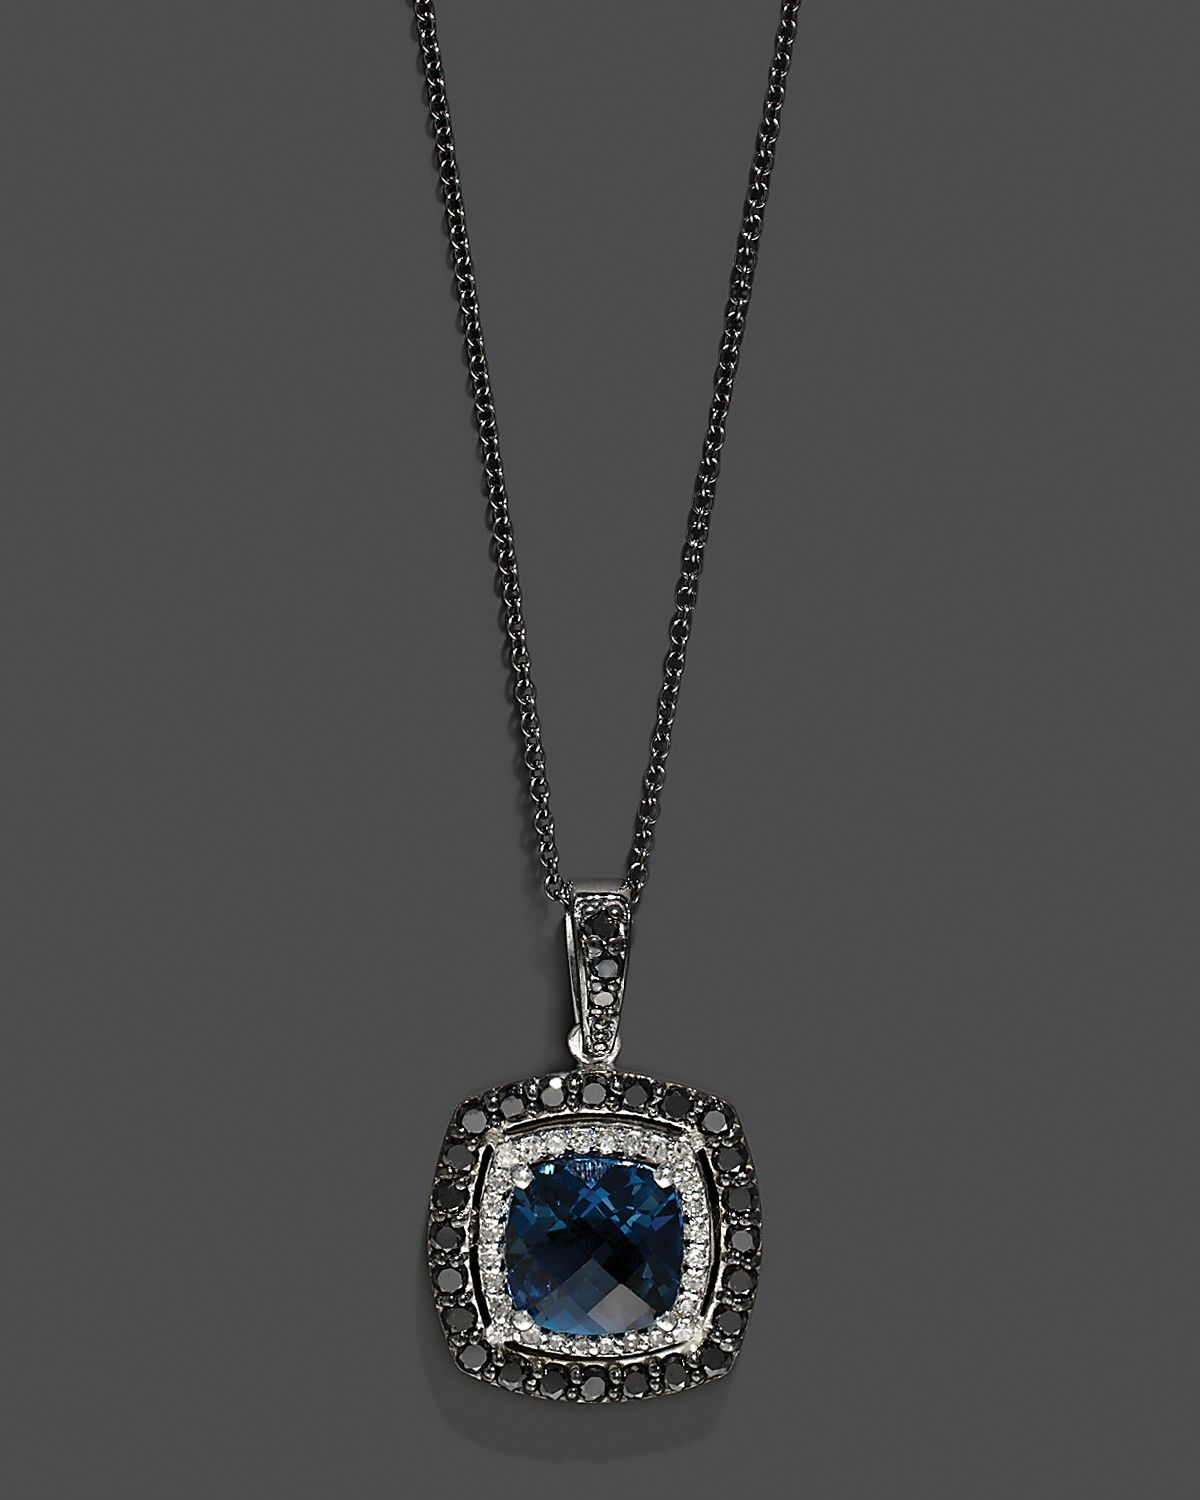 Diamond, Black Diamond And London Blue Topaz Pendant In 14K White With Regard To Best And Newest London Blue Crystal December Droplet Pendant Necklaces (View 19 of 25)